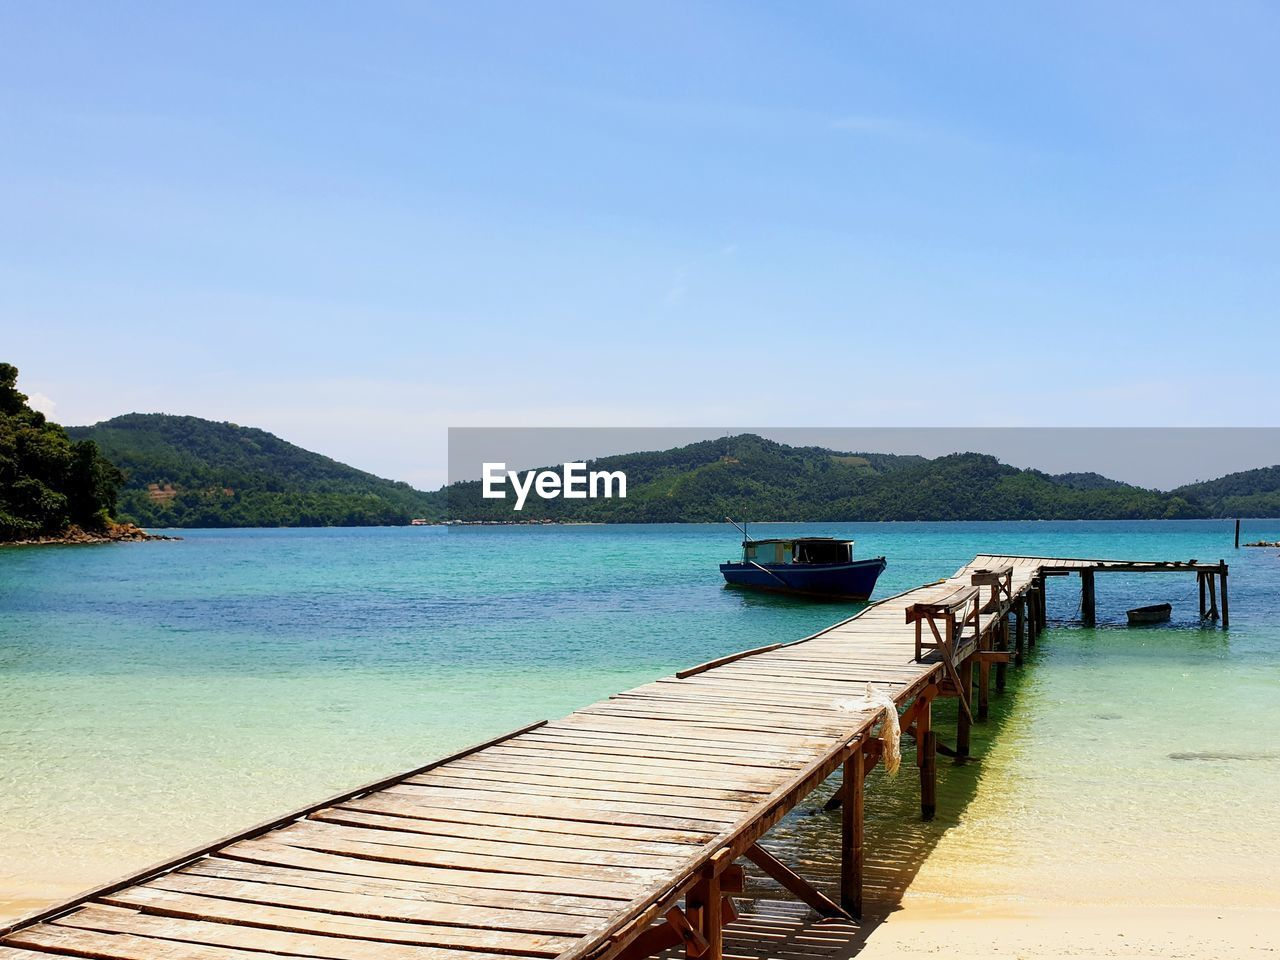 water, tranquility, scenics, tranquil scene, nature, beauty in nature, sea, mountain, outdoors, day, pier, clear sky, no people, wood - material, jetty, blue, sky, nautical vessel, tree